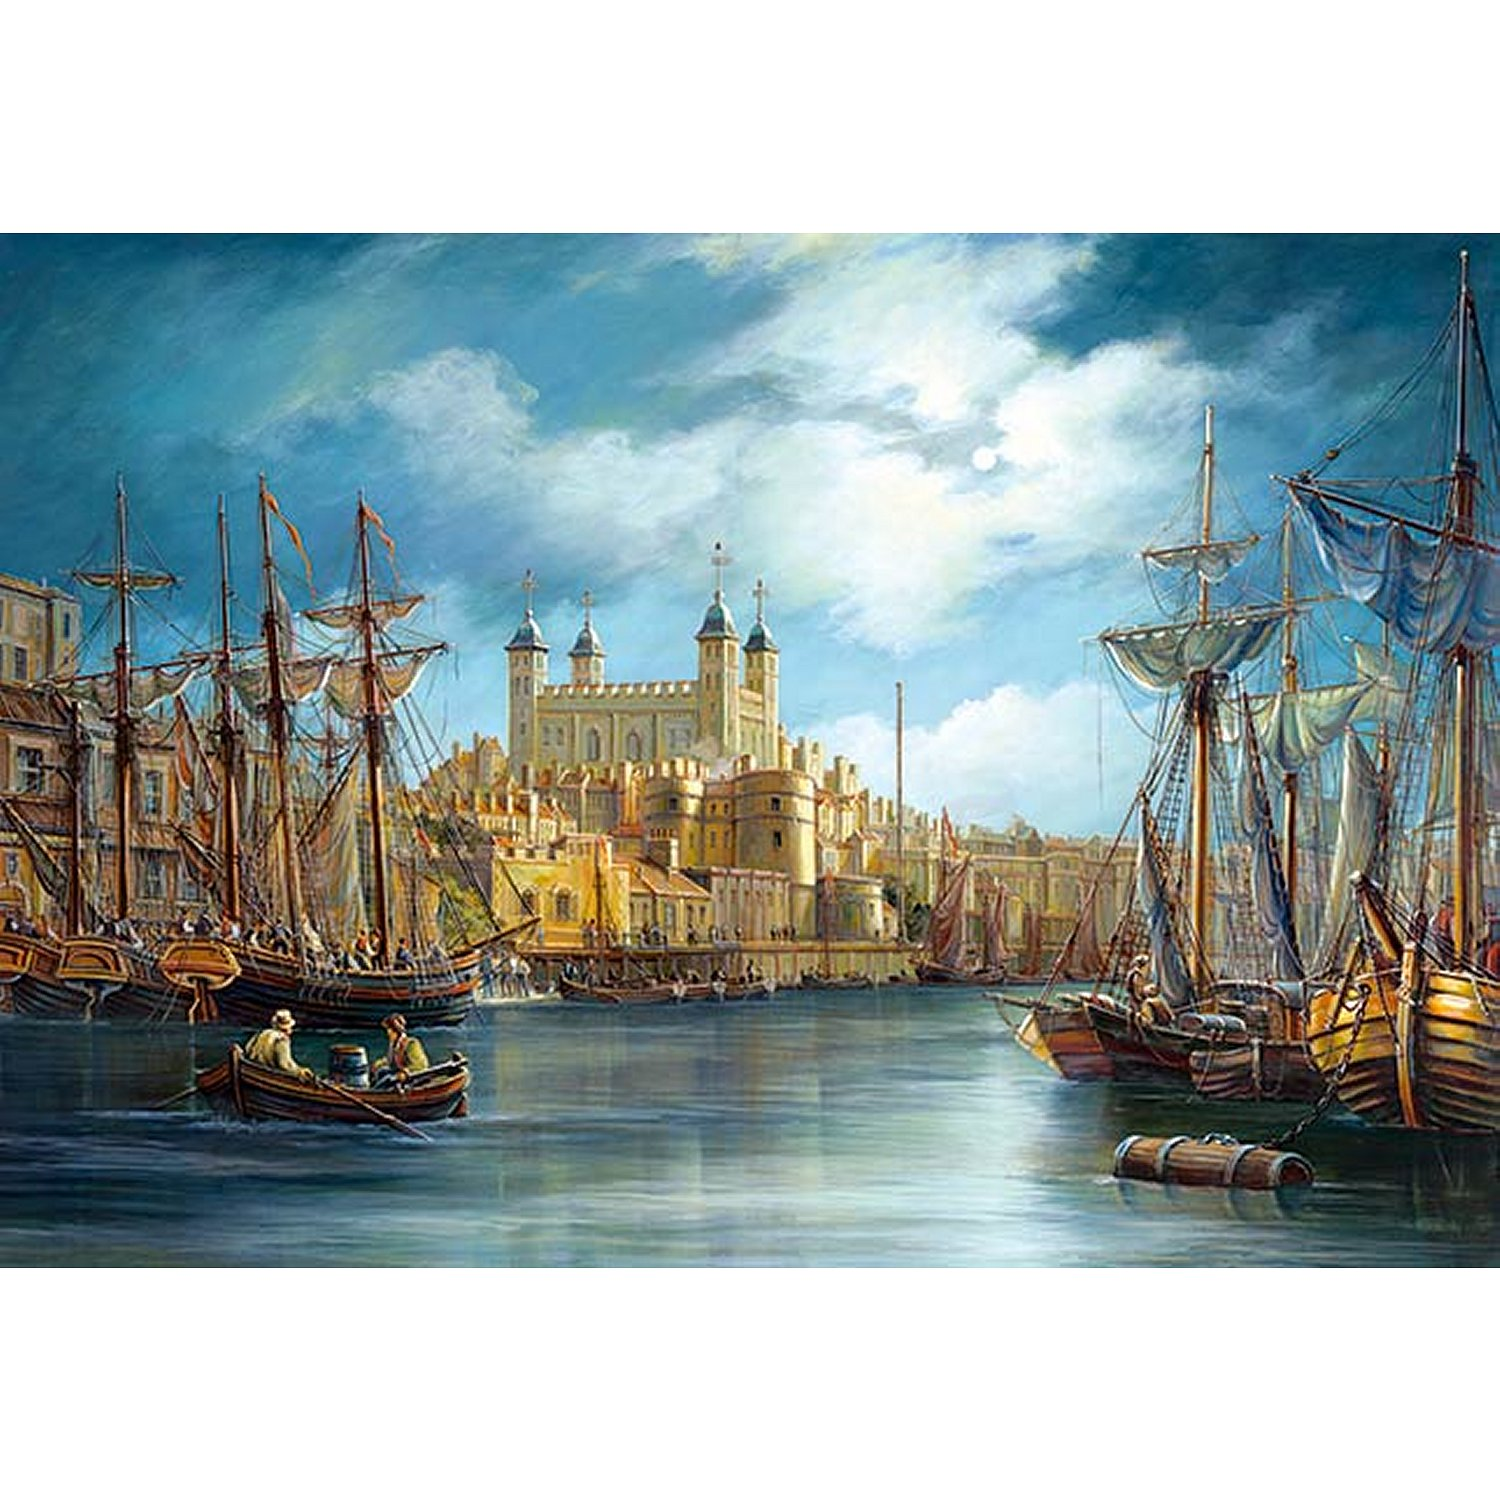 jigsaw puzzle 3000 pieces sunrise on the harbour castorland 300167 3000 pieces jigsaw. Black Bedroom Furniture Sets. Home Design Ideas